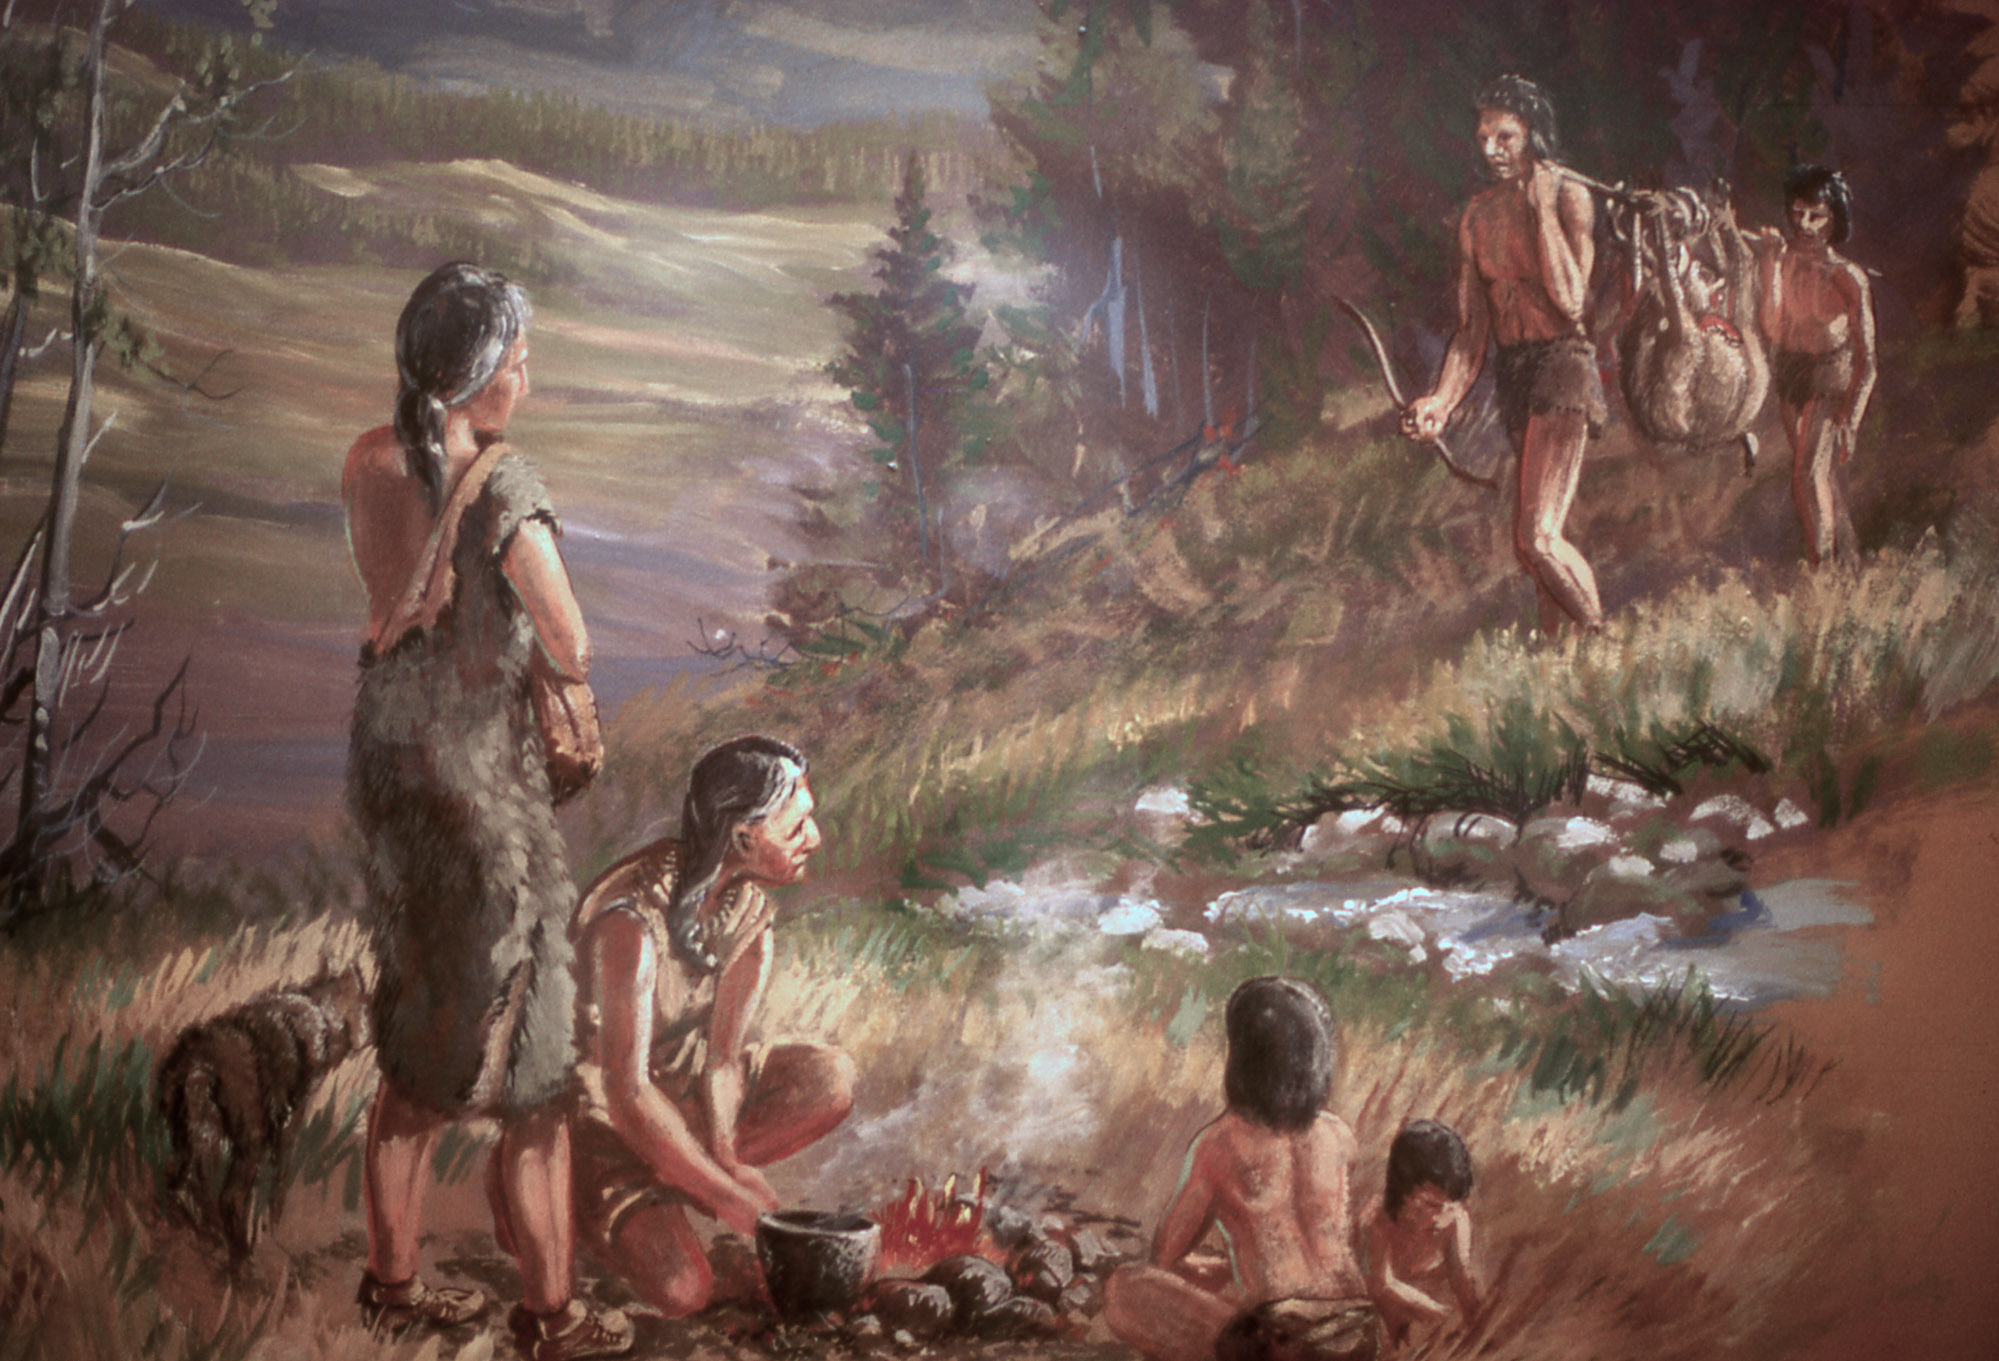 How did Stone Age hunter-gatherers live?